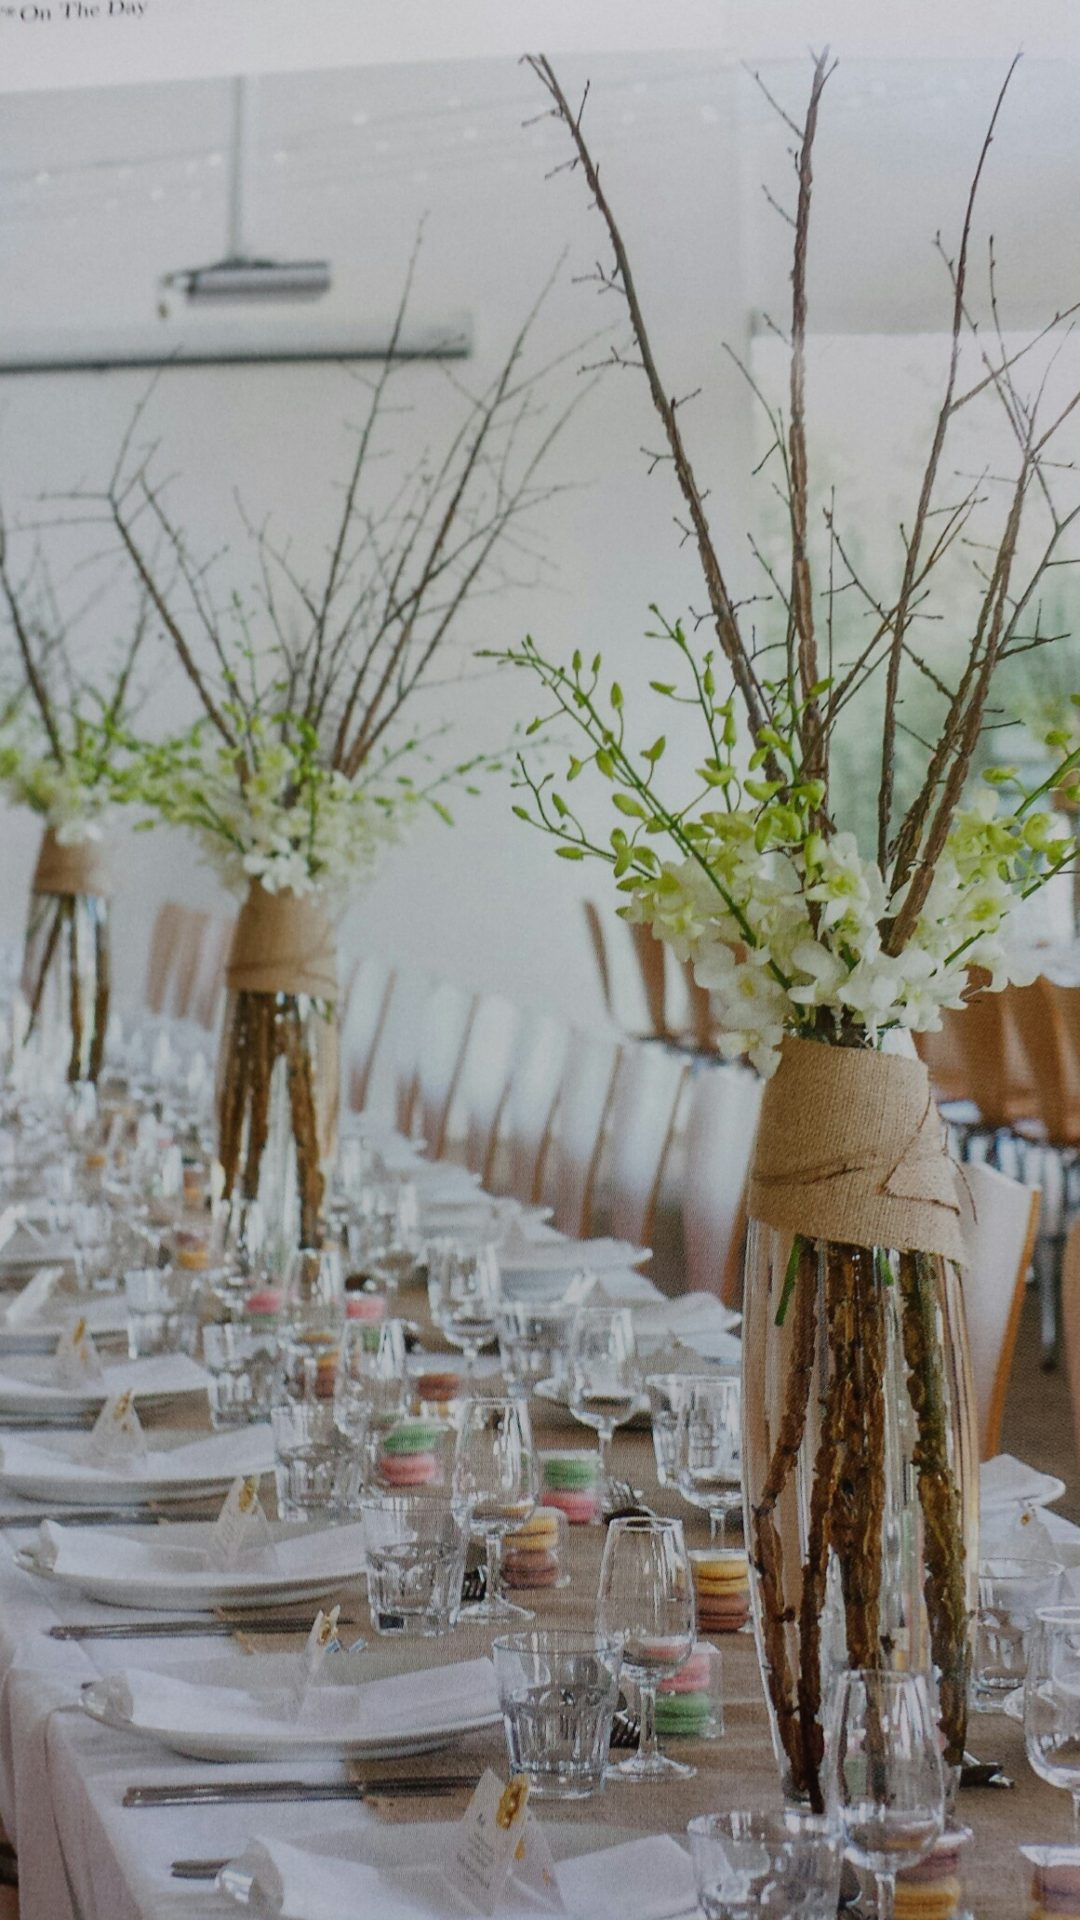 Tall glass vases with sticks and orchids wrapped in hessian